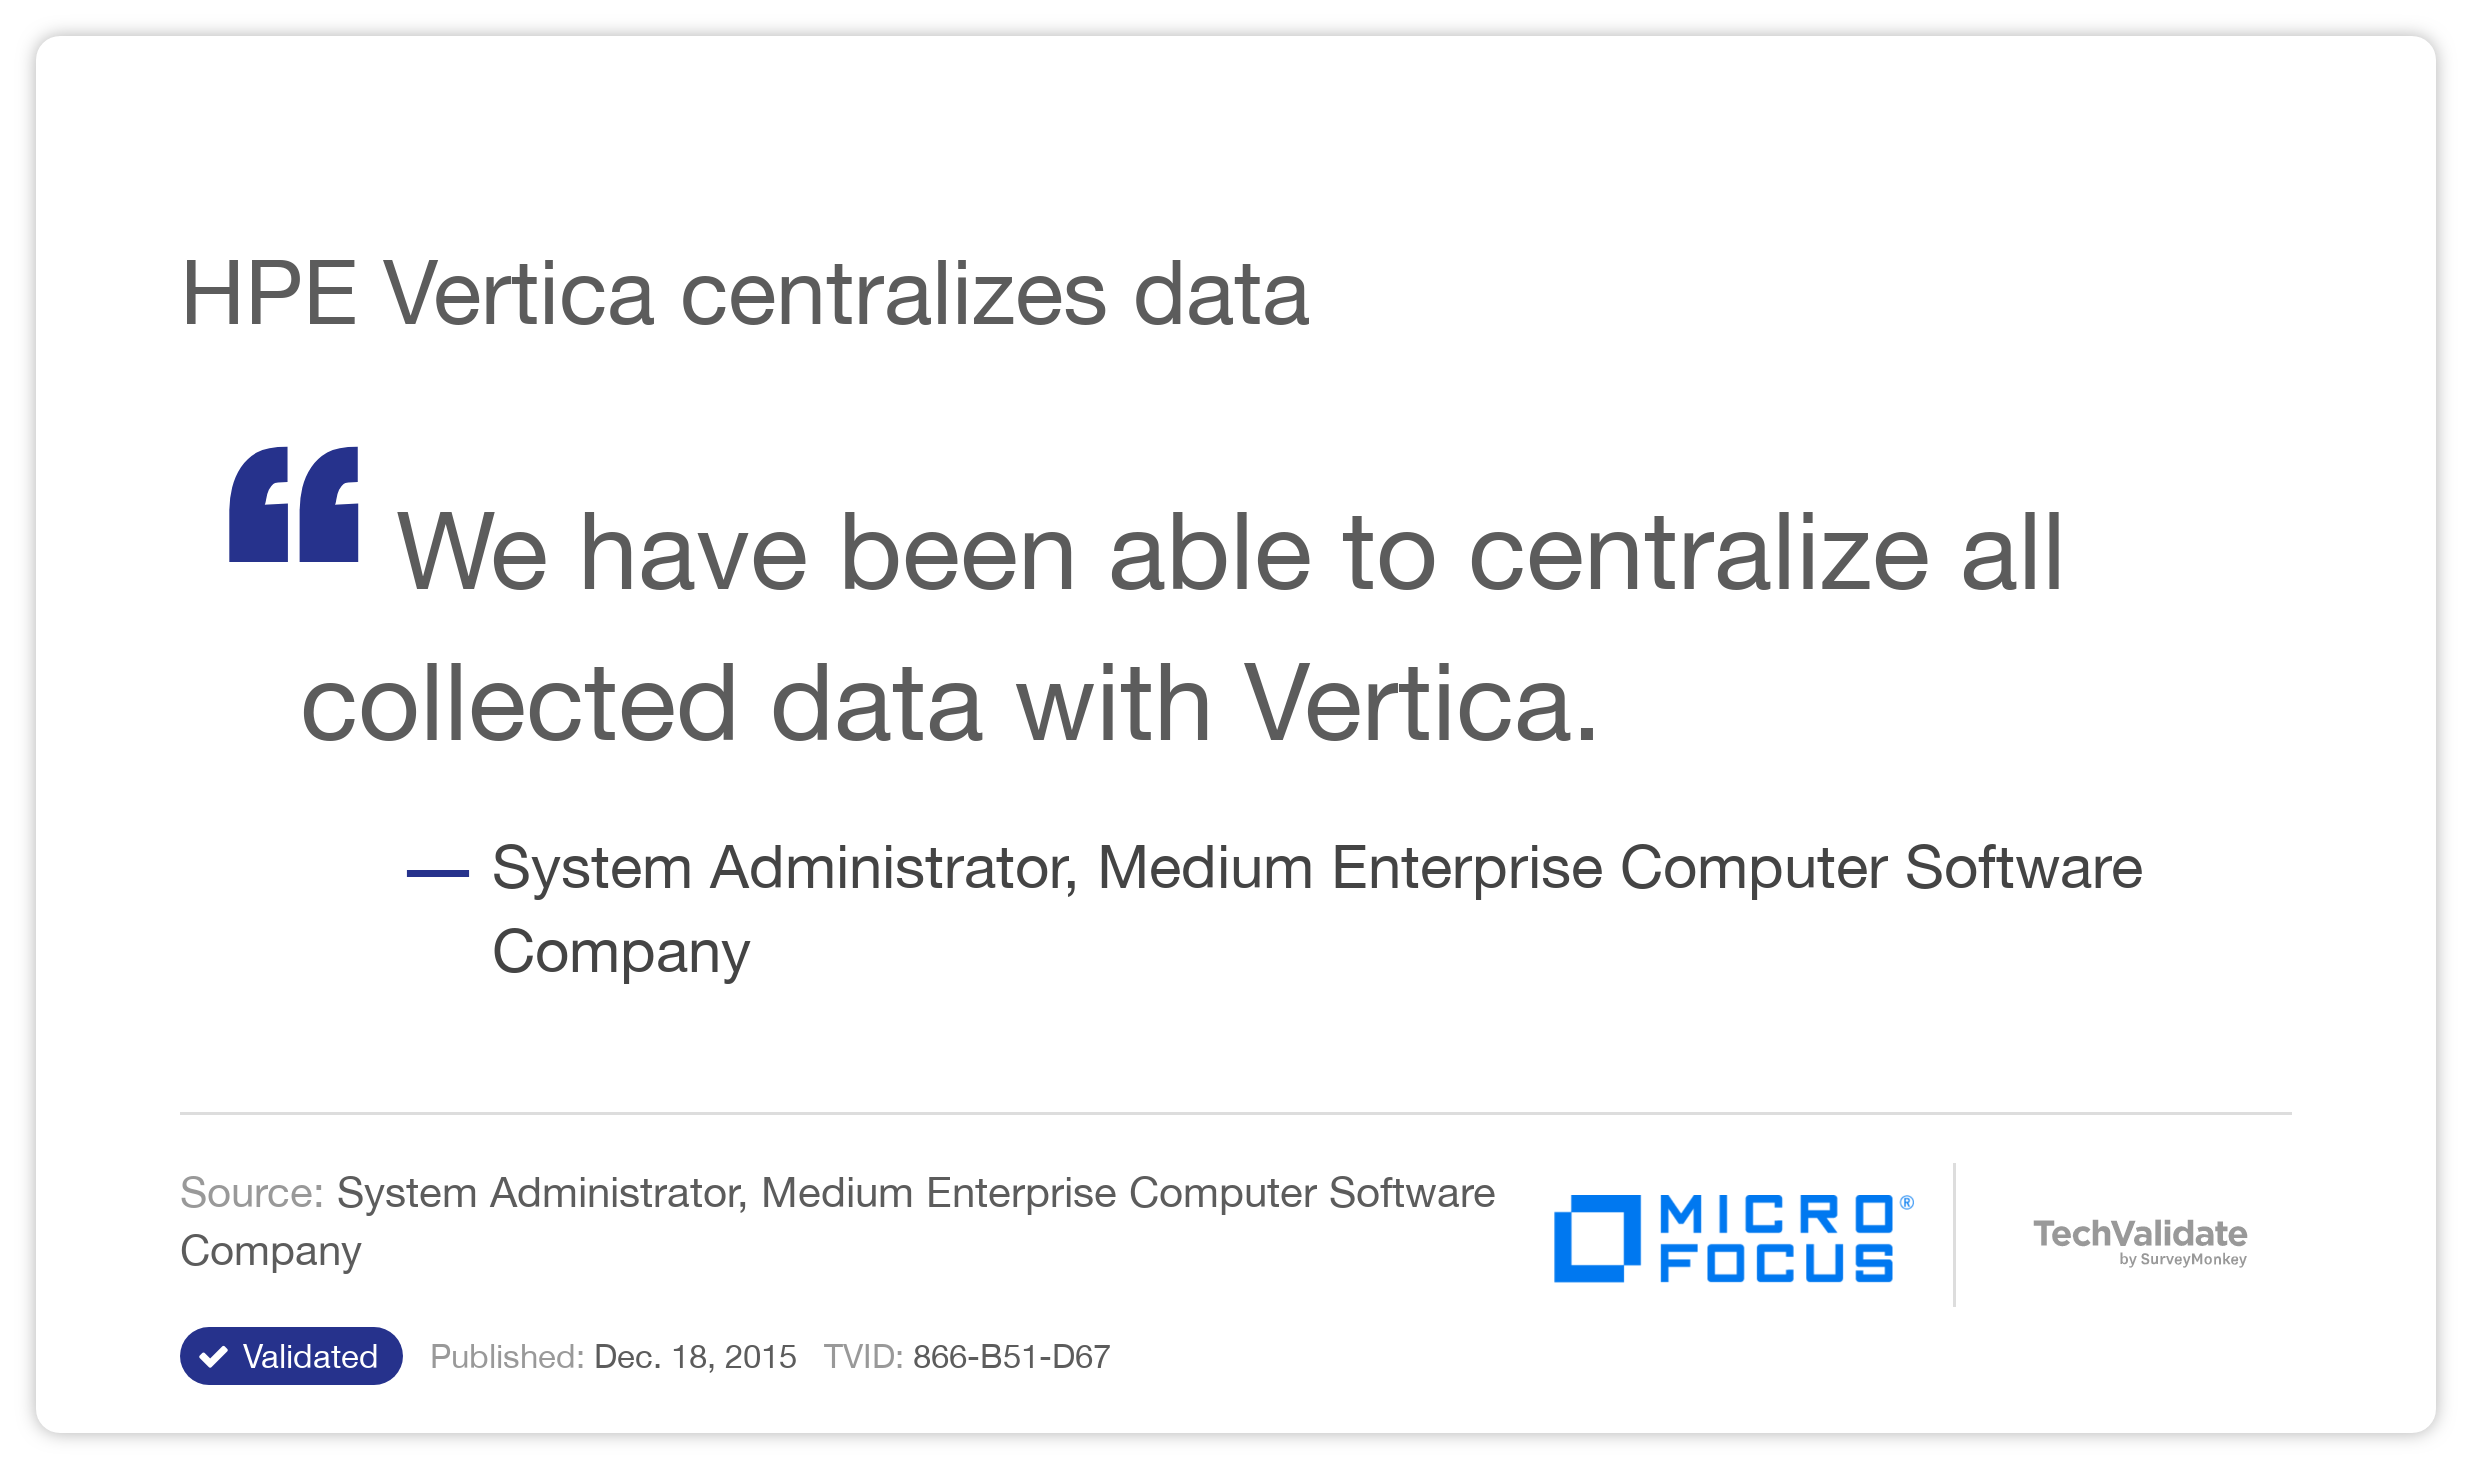 HPE Vertica centralizes data